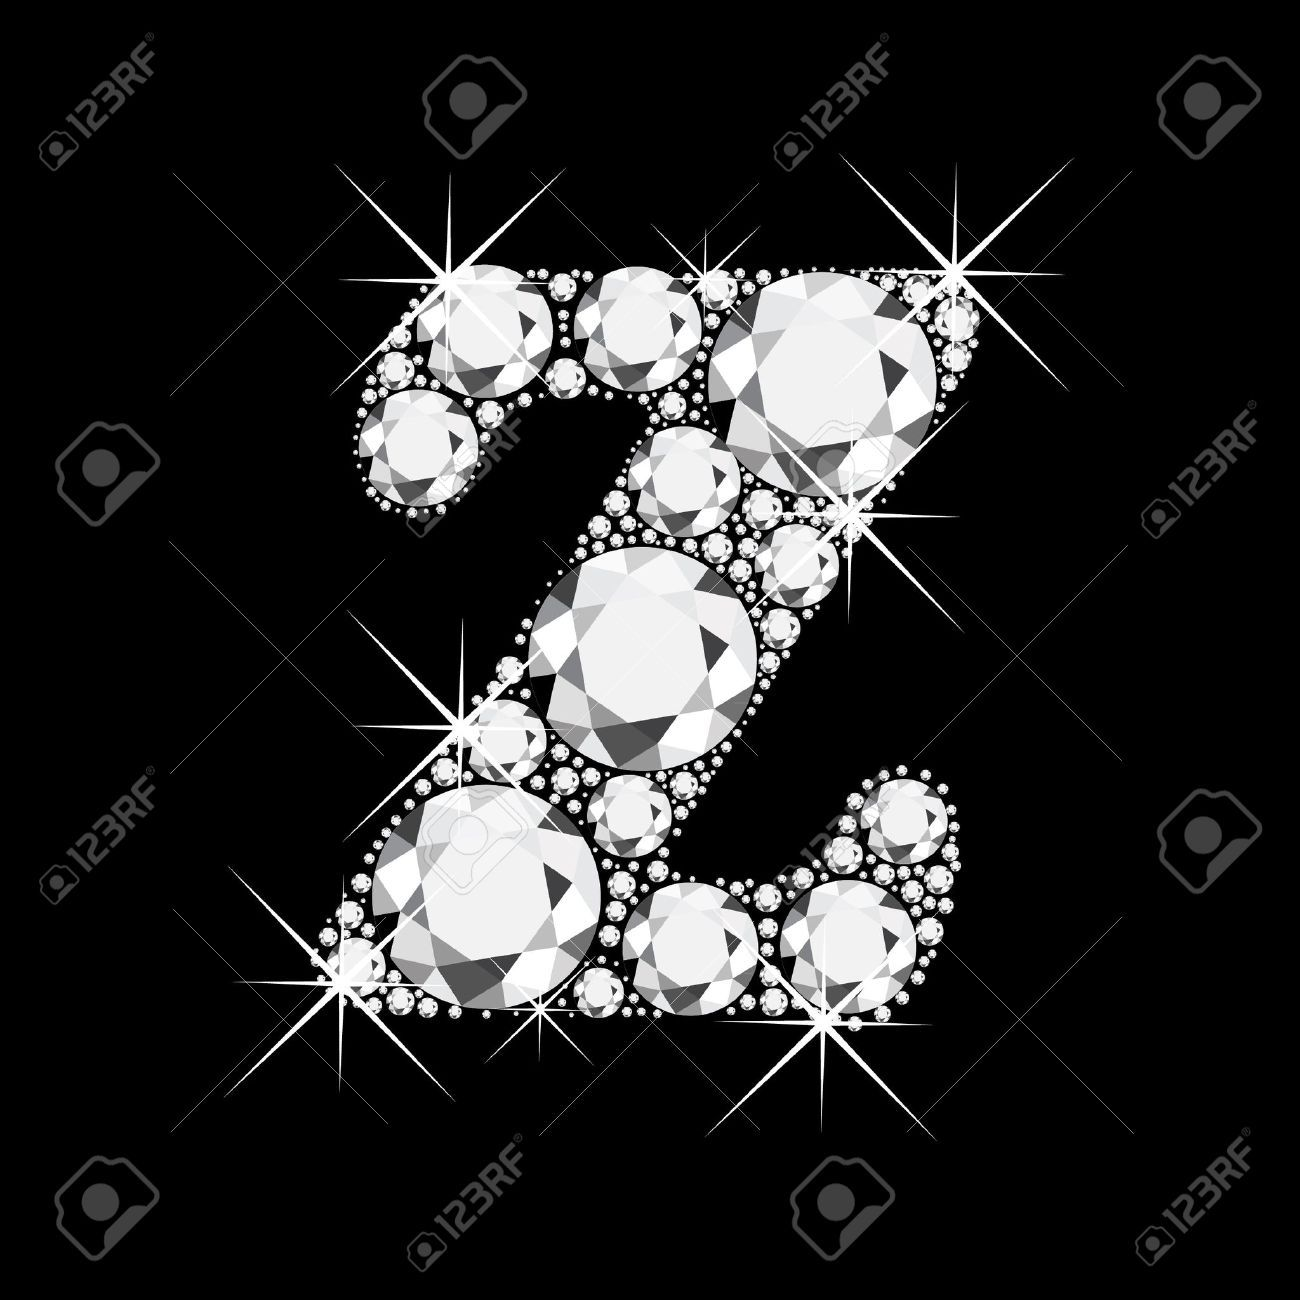 You can download Z Alphabet Hd Wallpapers here. Z Alphabet Hd Wallpapers In High Resolution ...